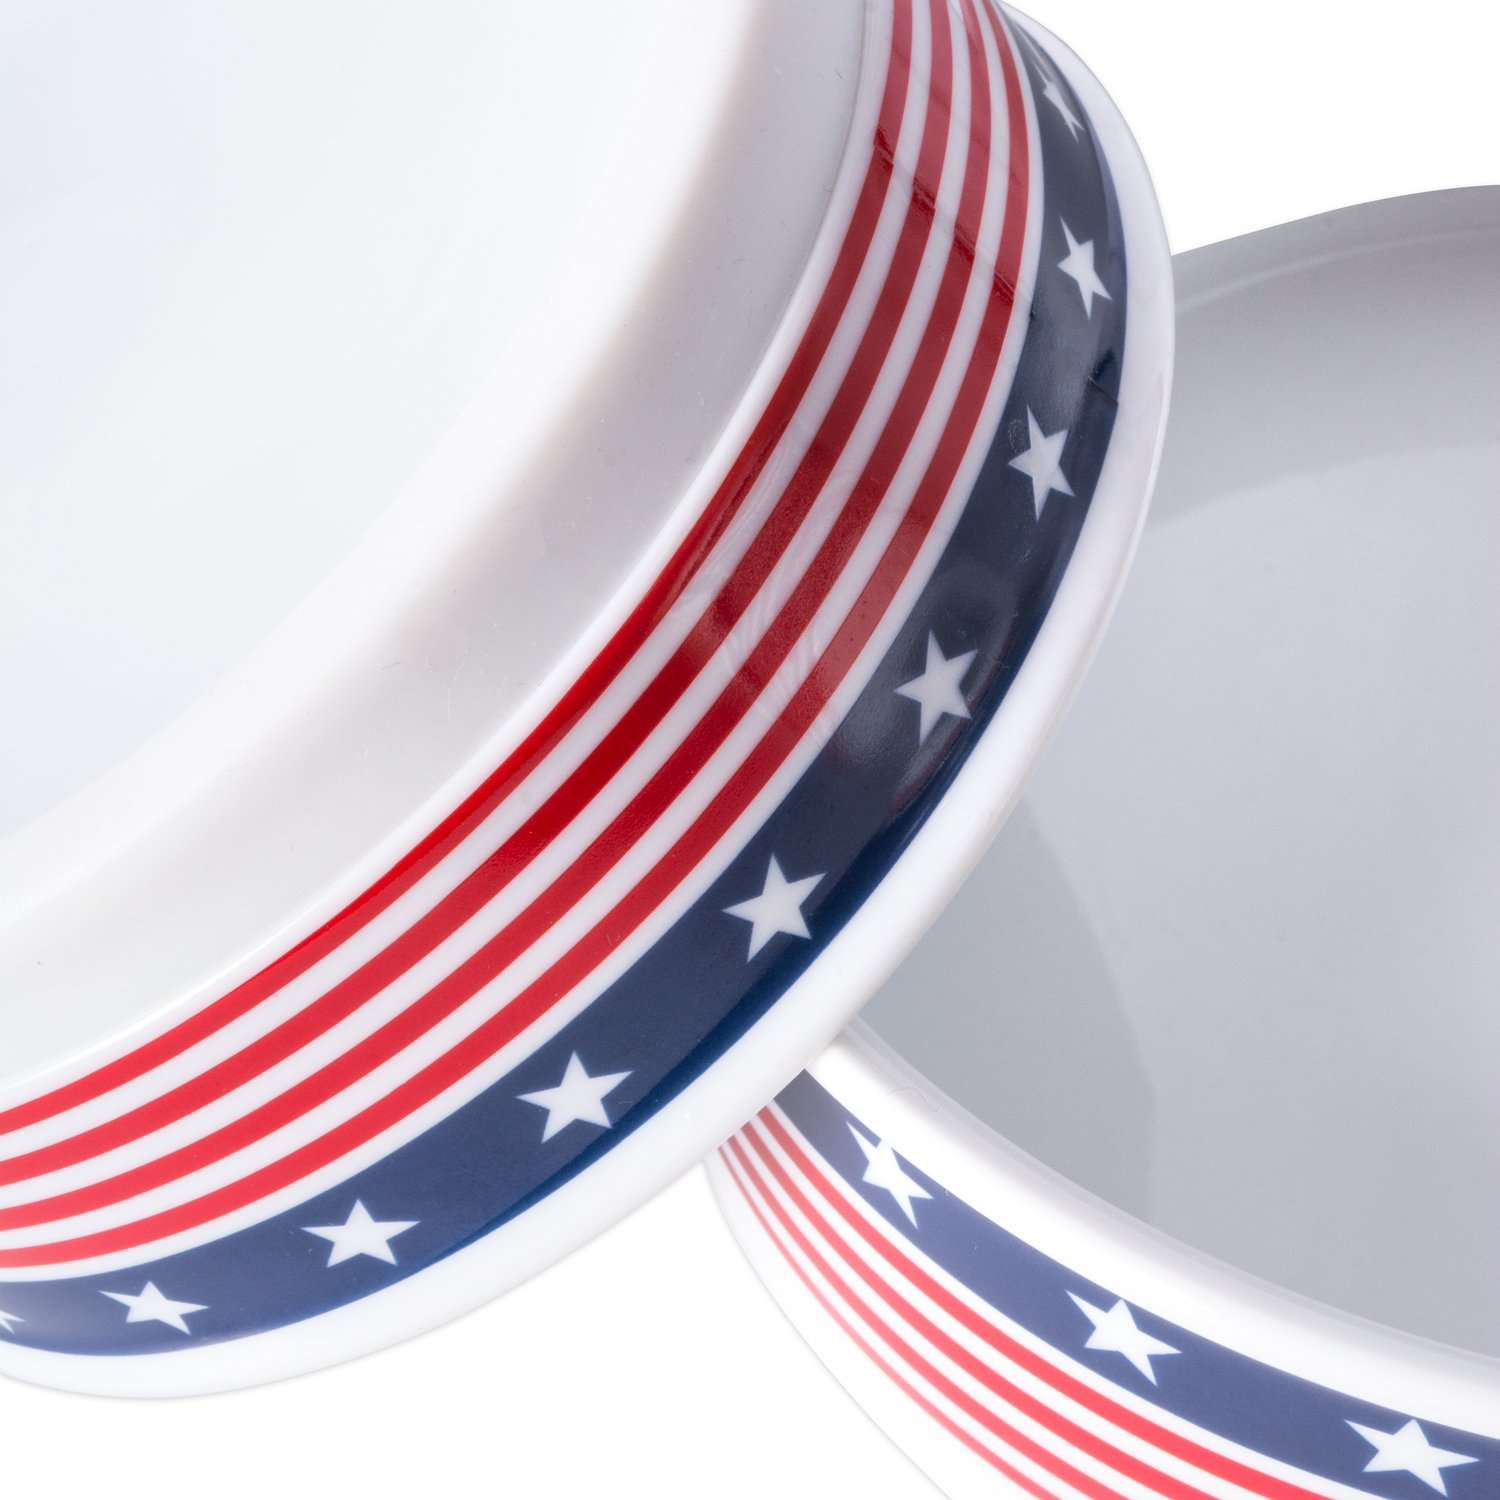 Bone Dry DII Patriotic Ceramic Pet Bowl for Food & Water with Non-Skid Silicone Rim for Dogs and Cats (Large - 7.5'' Dia x 4'' H) Stars and Stripes by Bone Dry (Image #3)